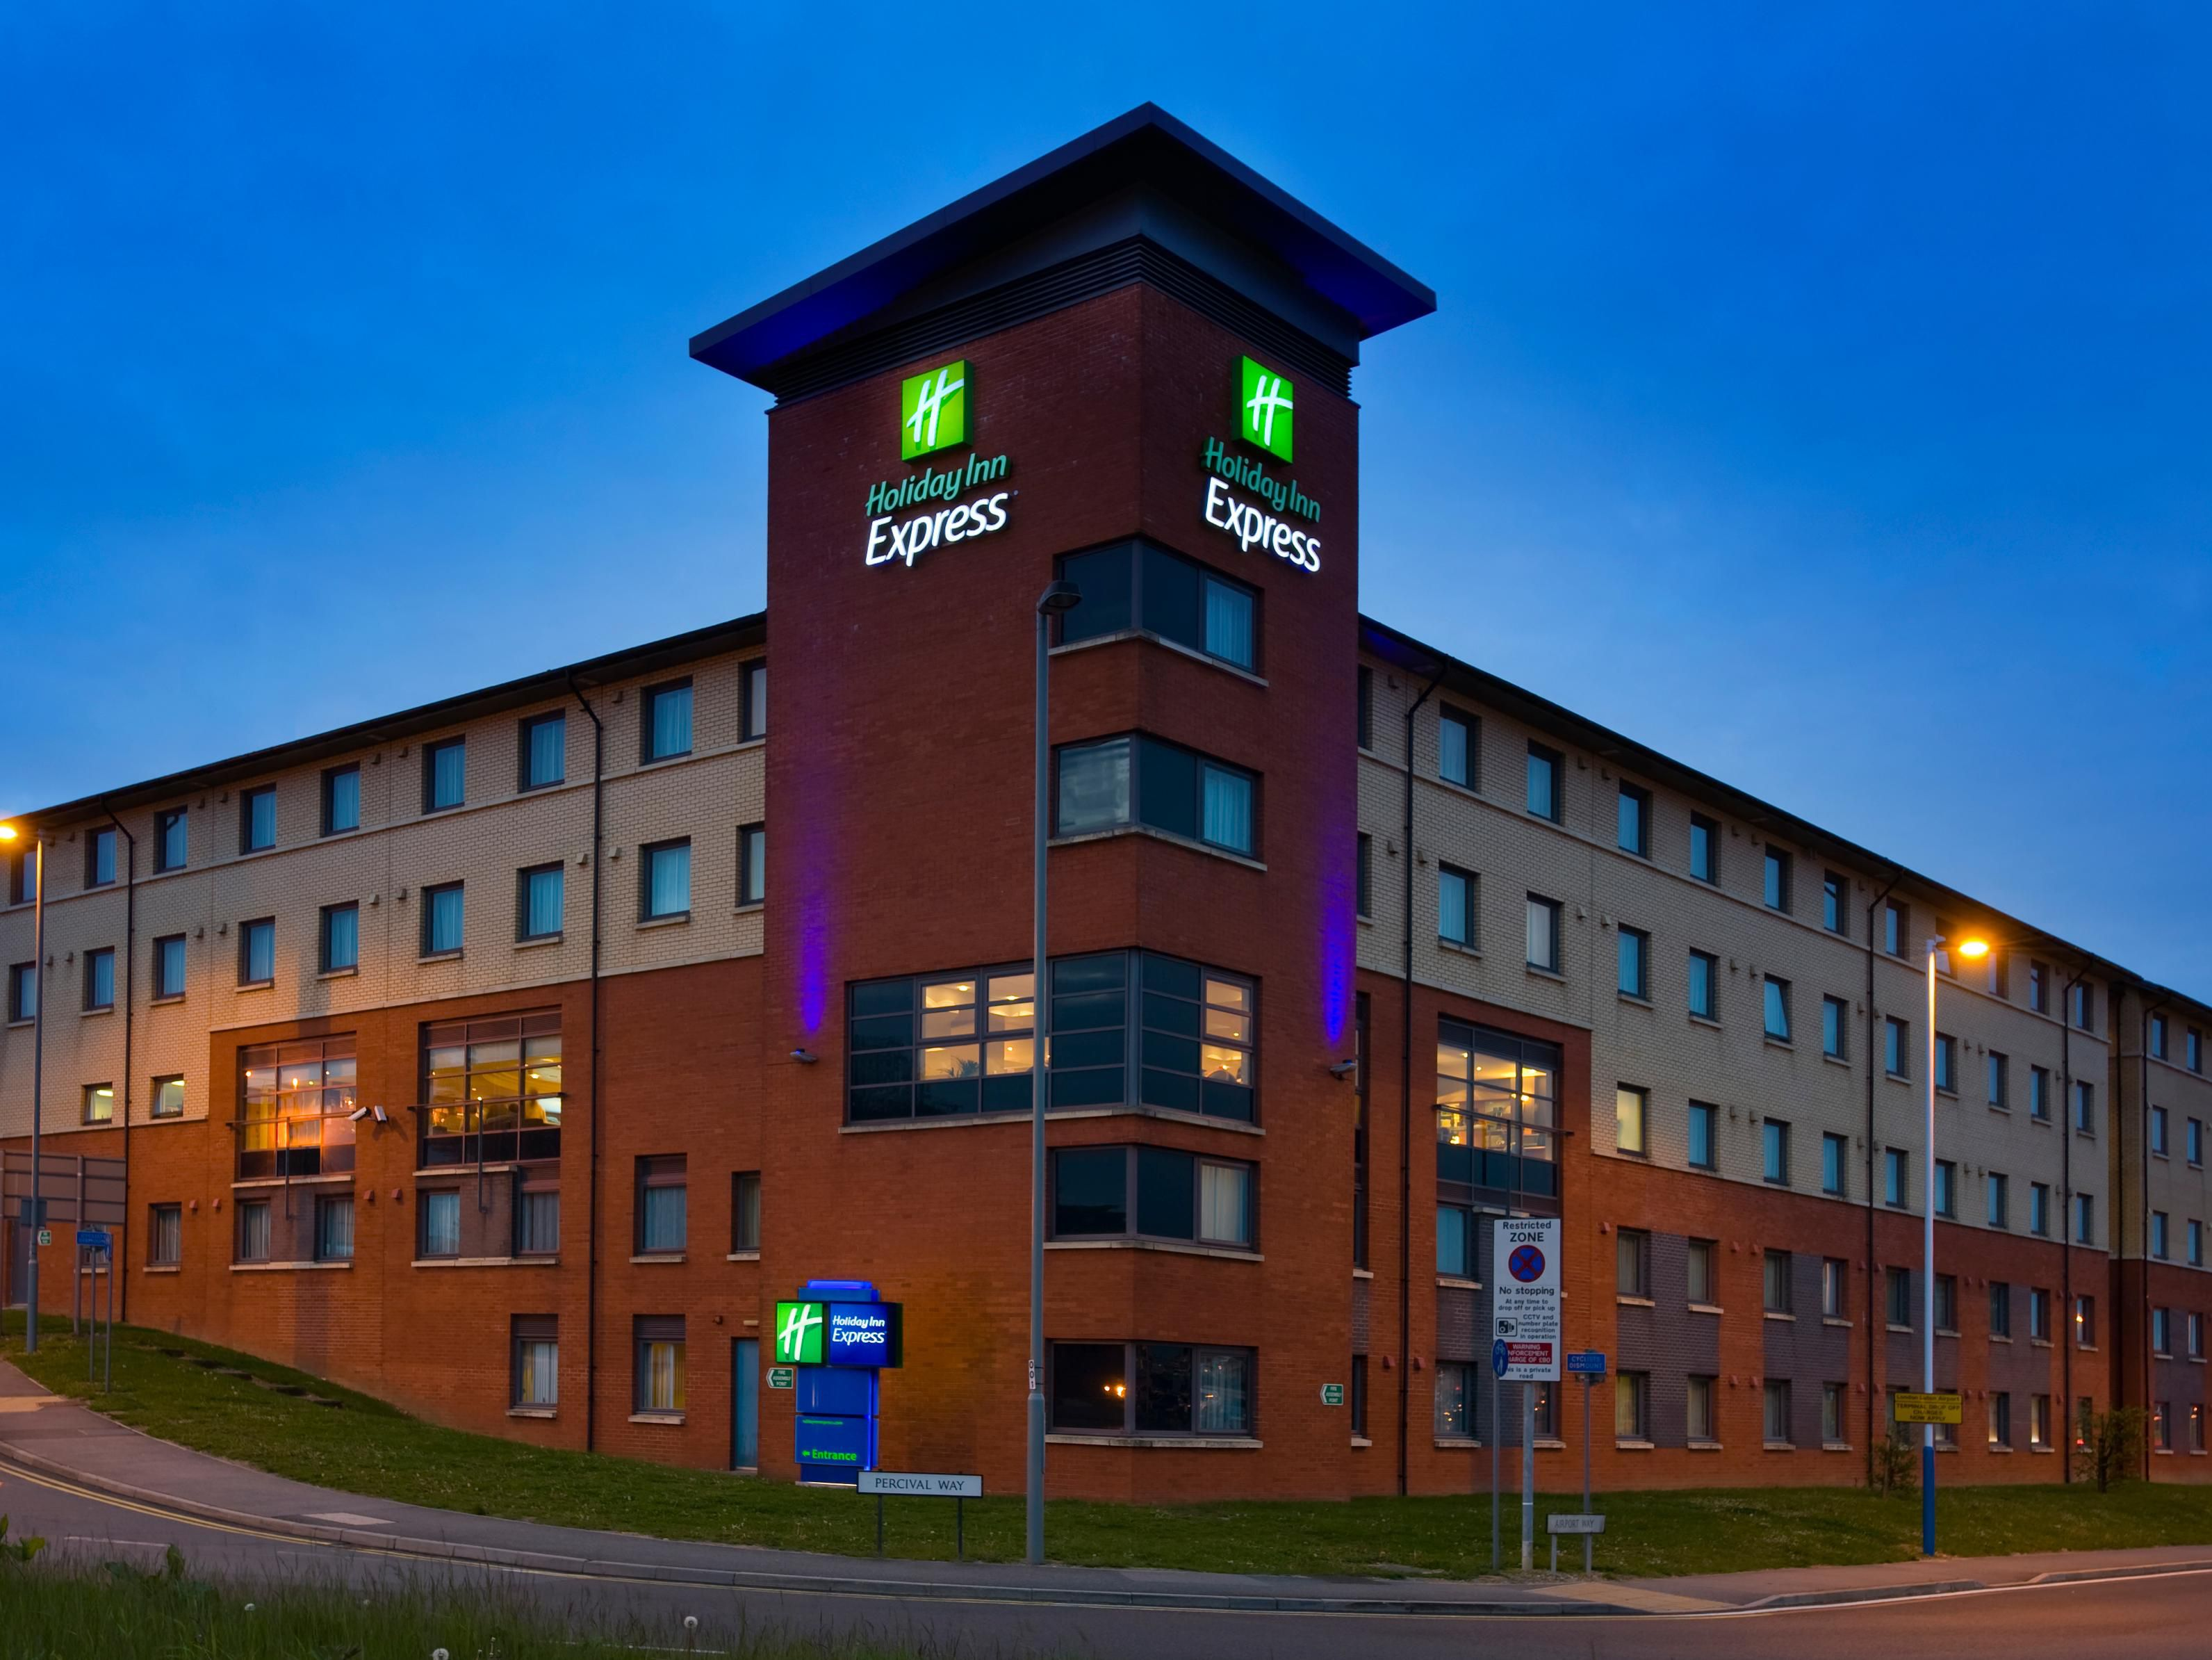 Your Holiday Inn Express hotel at Luton Airport